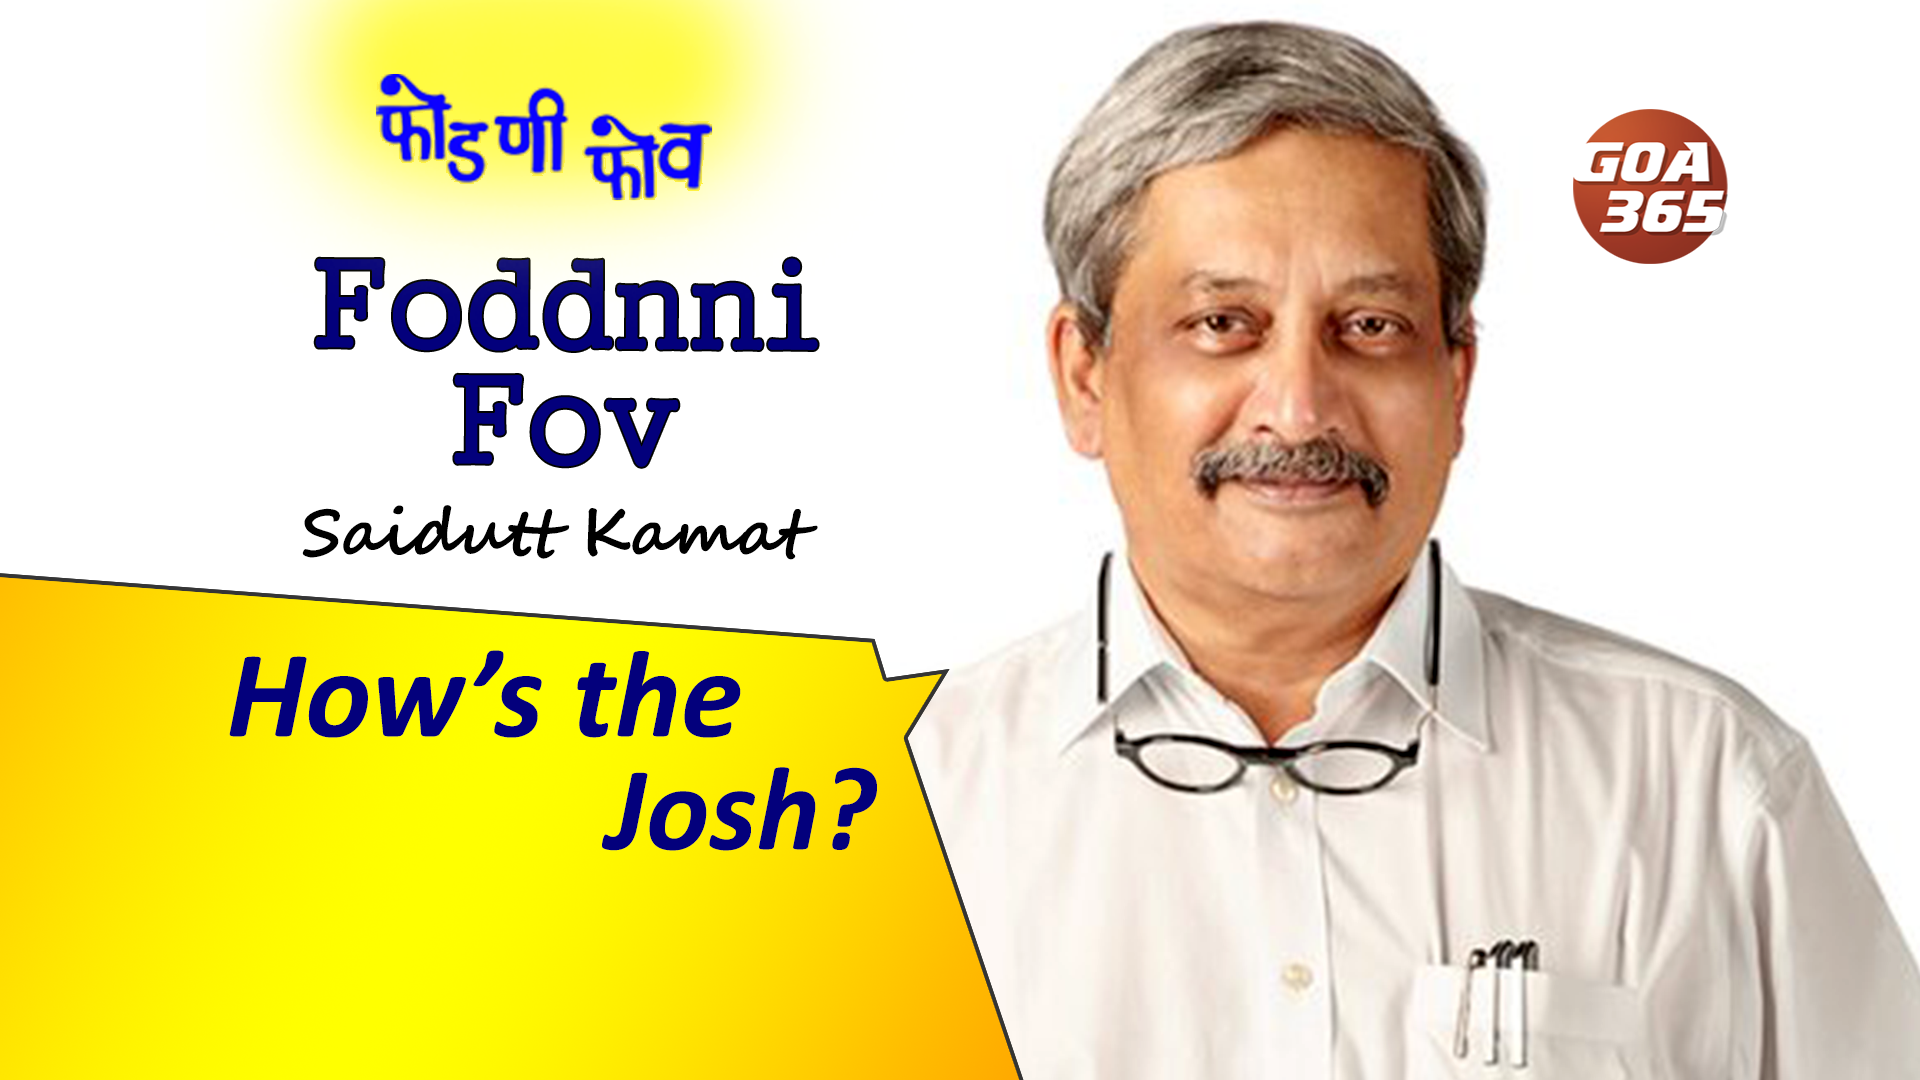 #FODDNNI_FOV :Hows the Josh